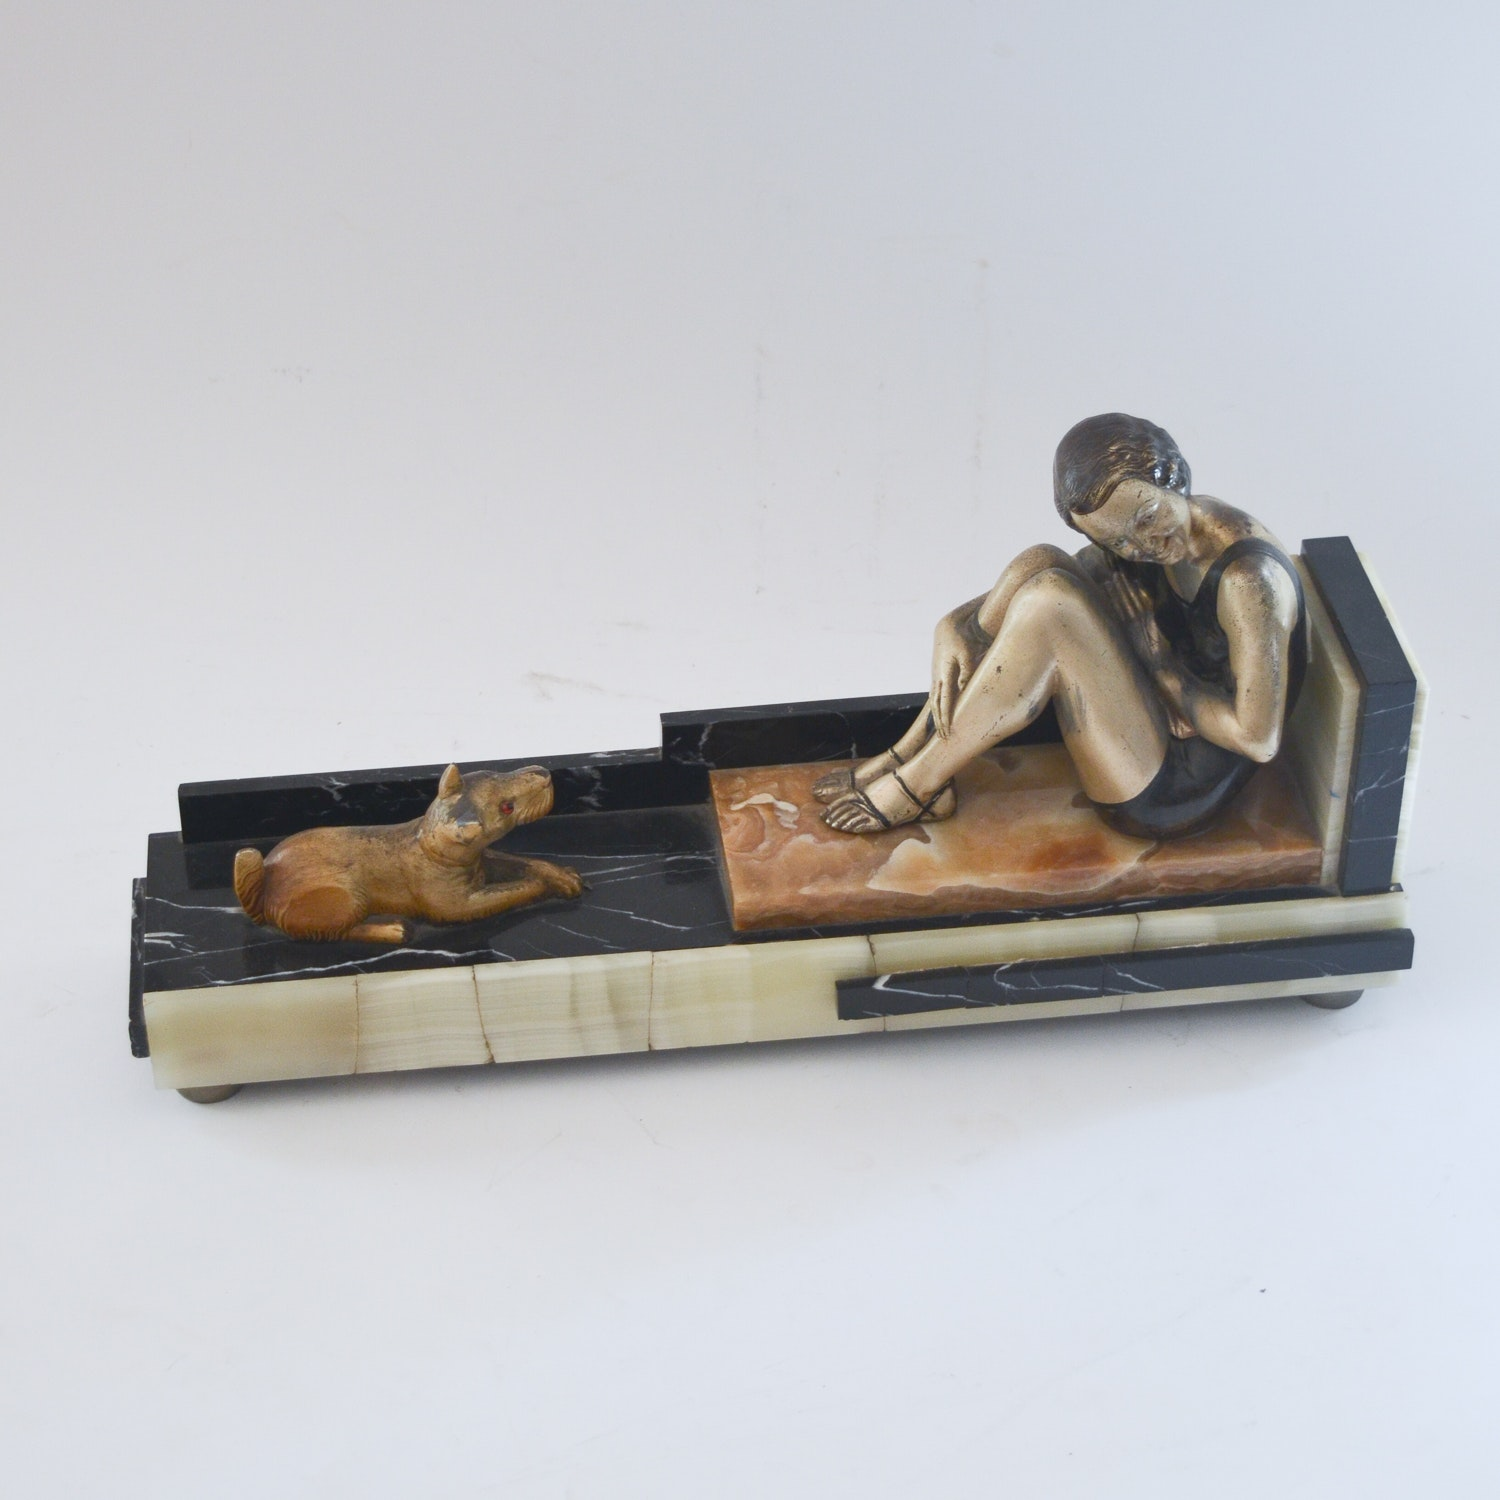 Art Deco Style Metal and Stone Sculpture of Child and Dog